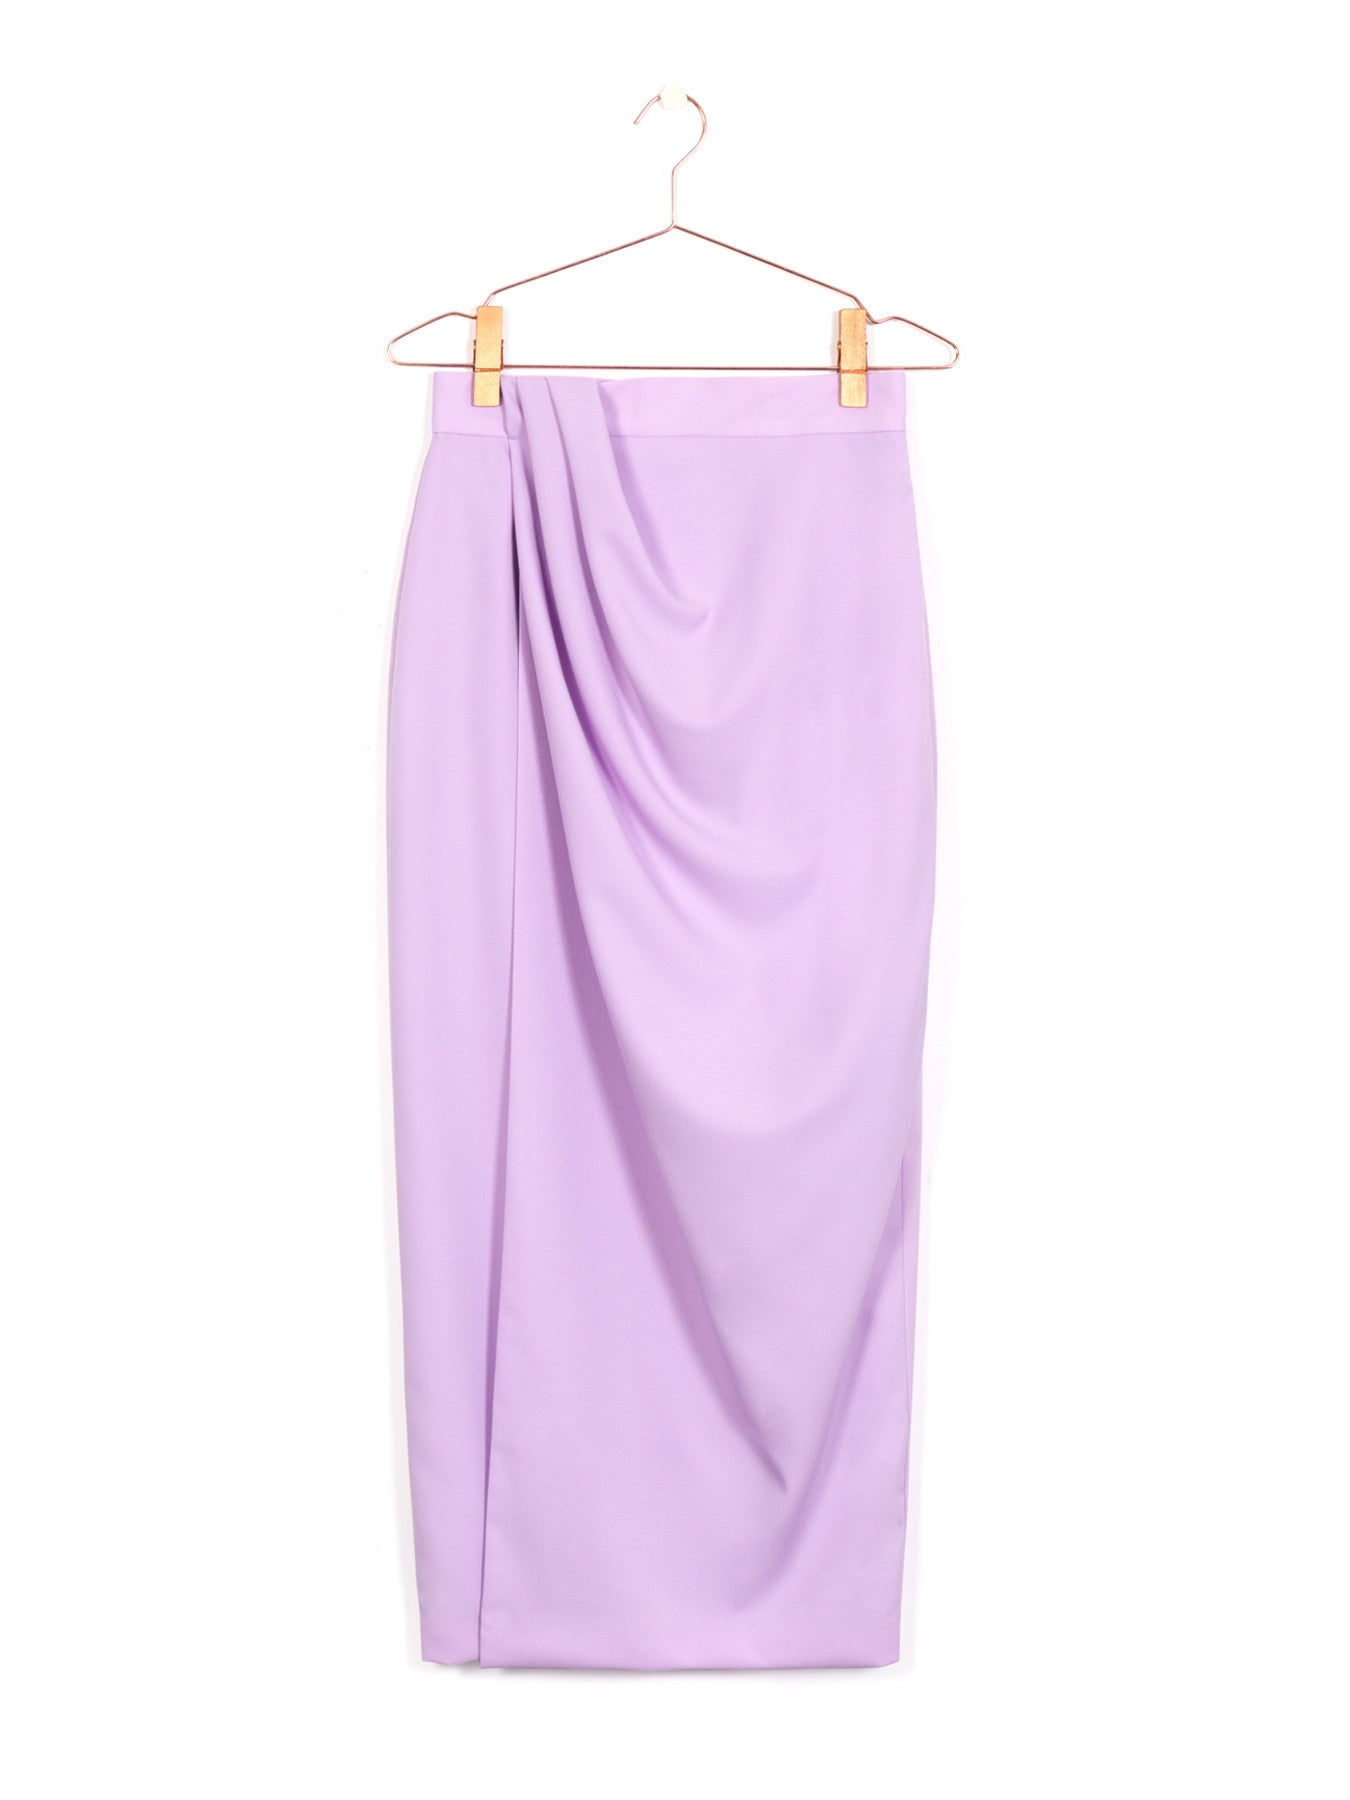 ego drapes draped skirt by alter ada product